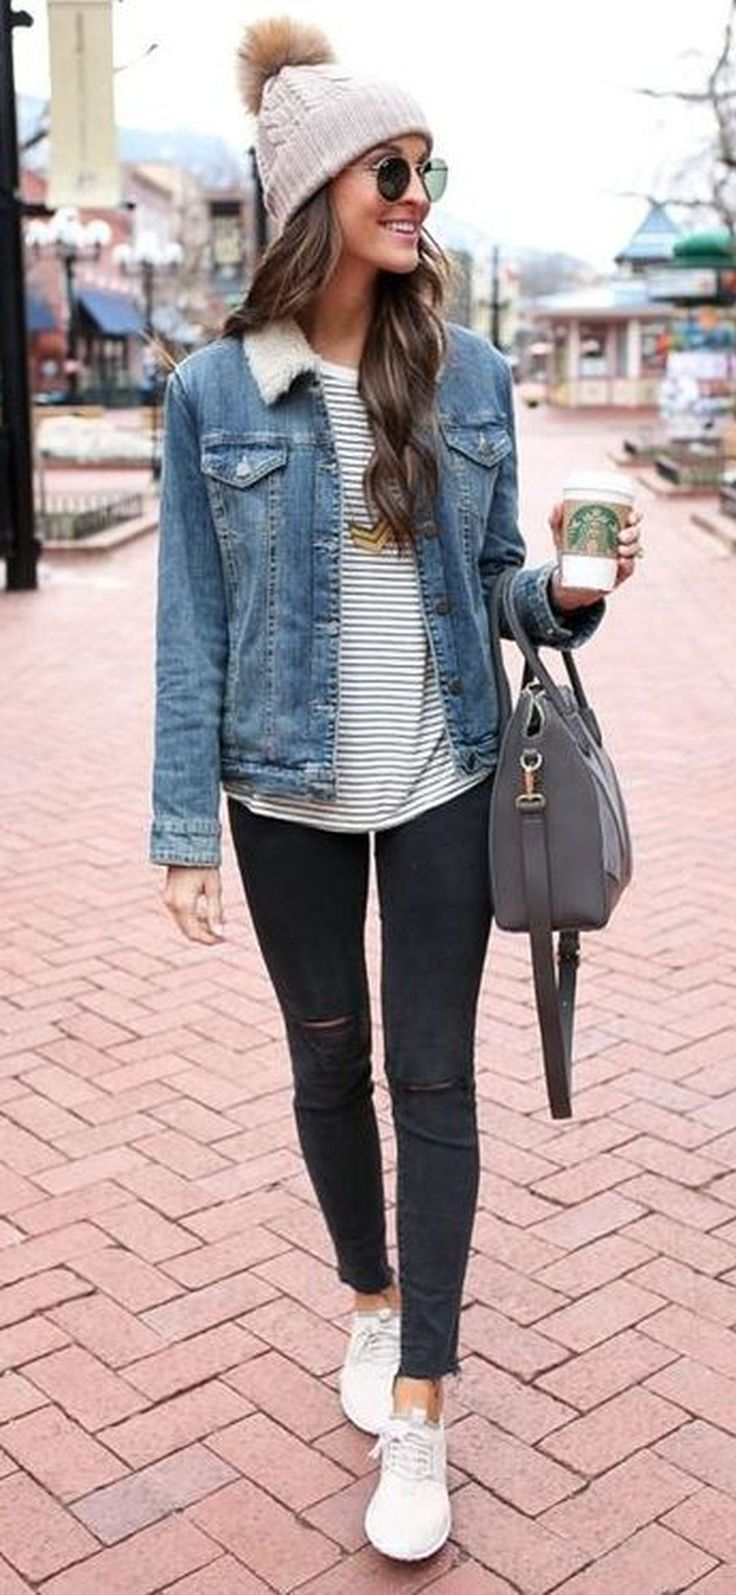 Best 25+ Jeans outfit winter ideas on Pinterest | Winter ...